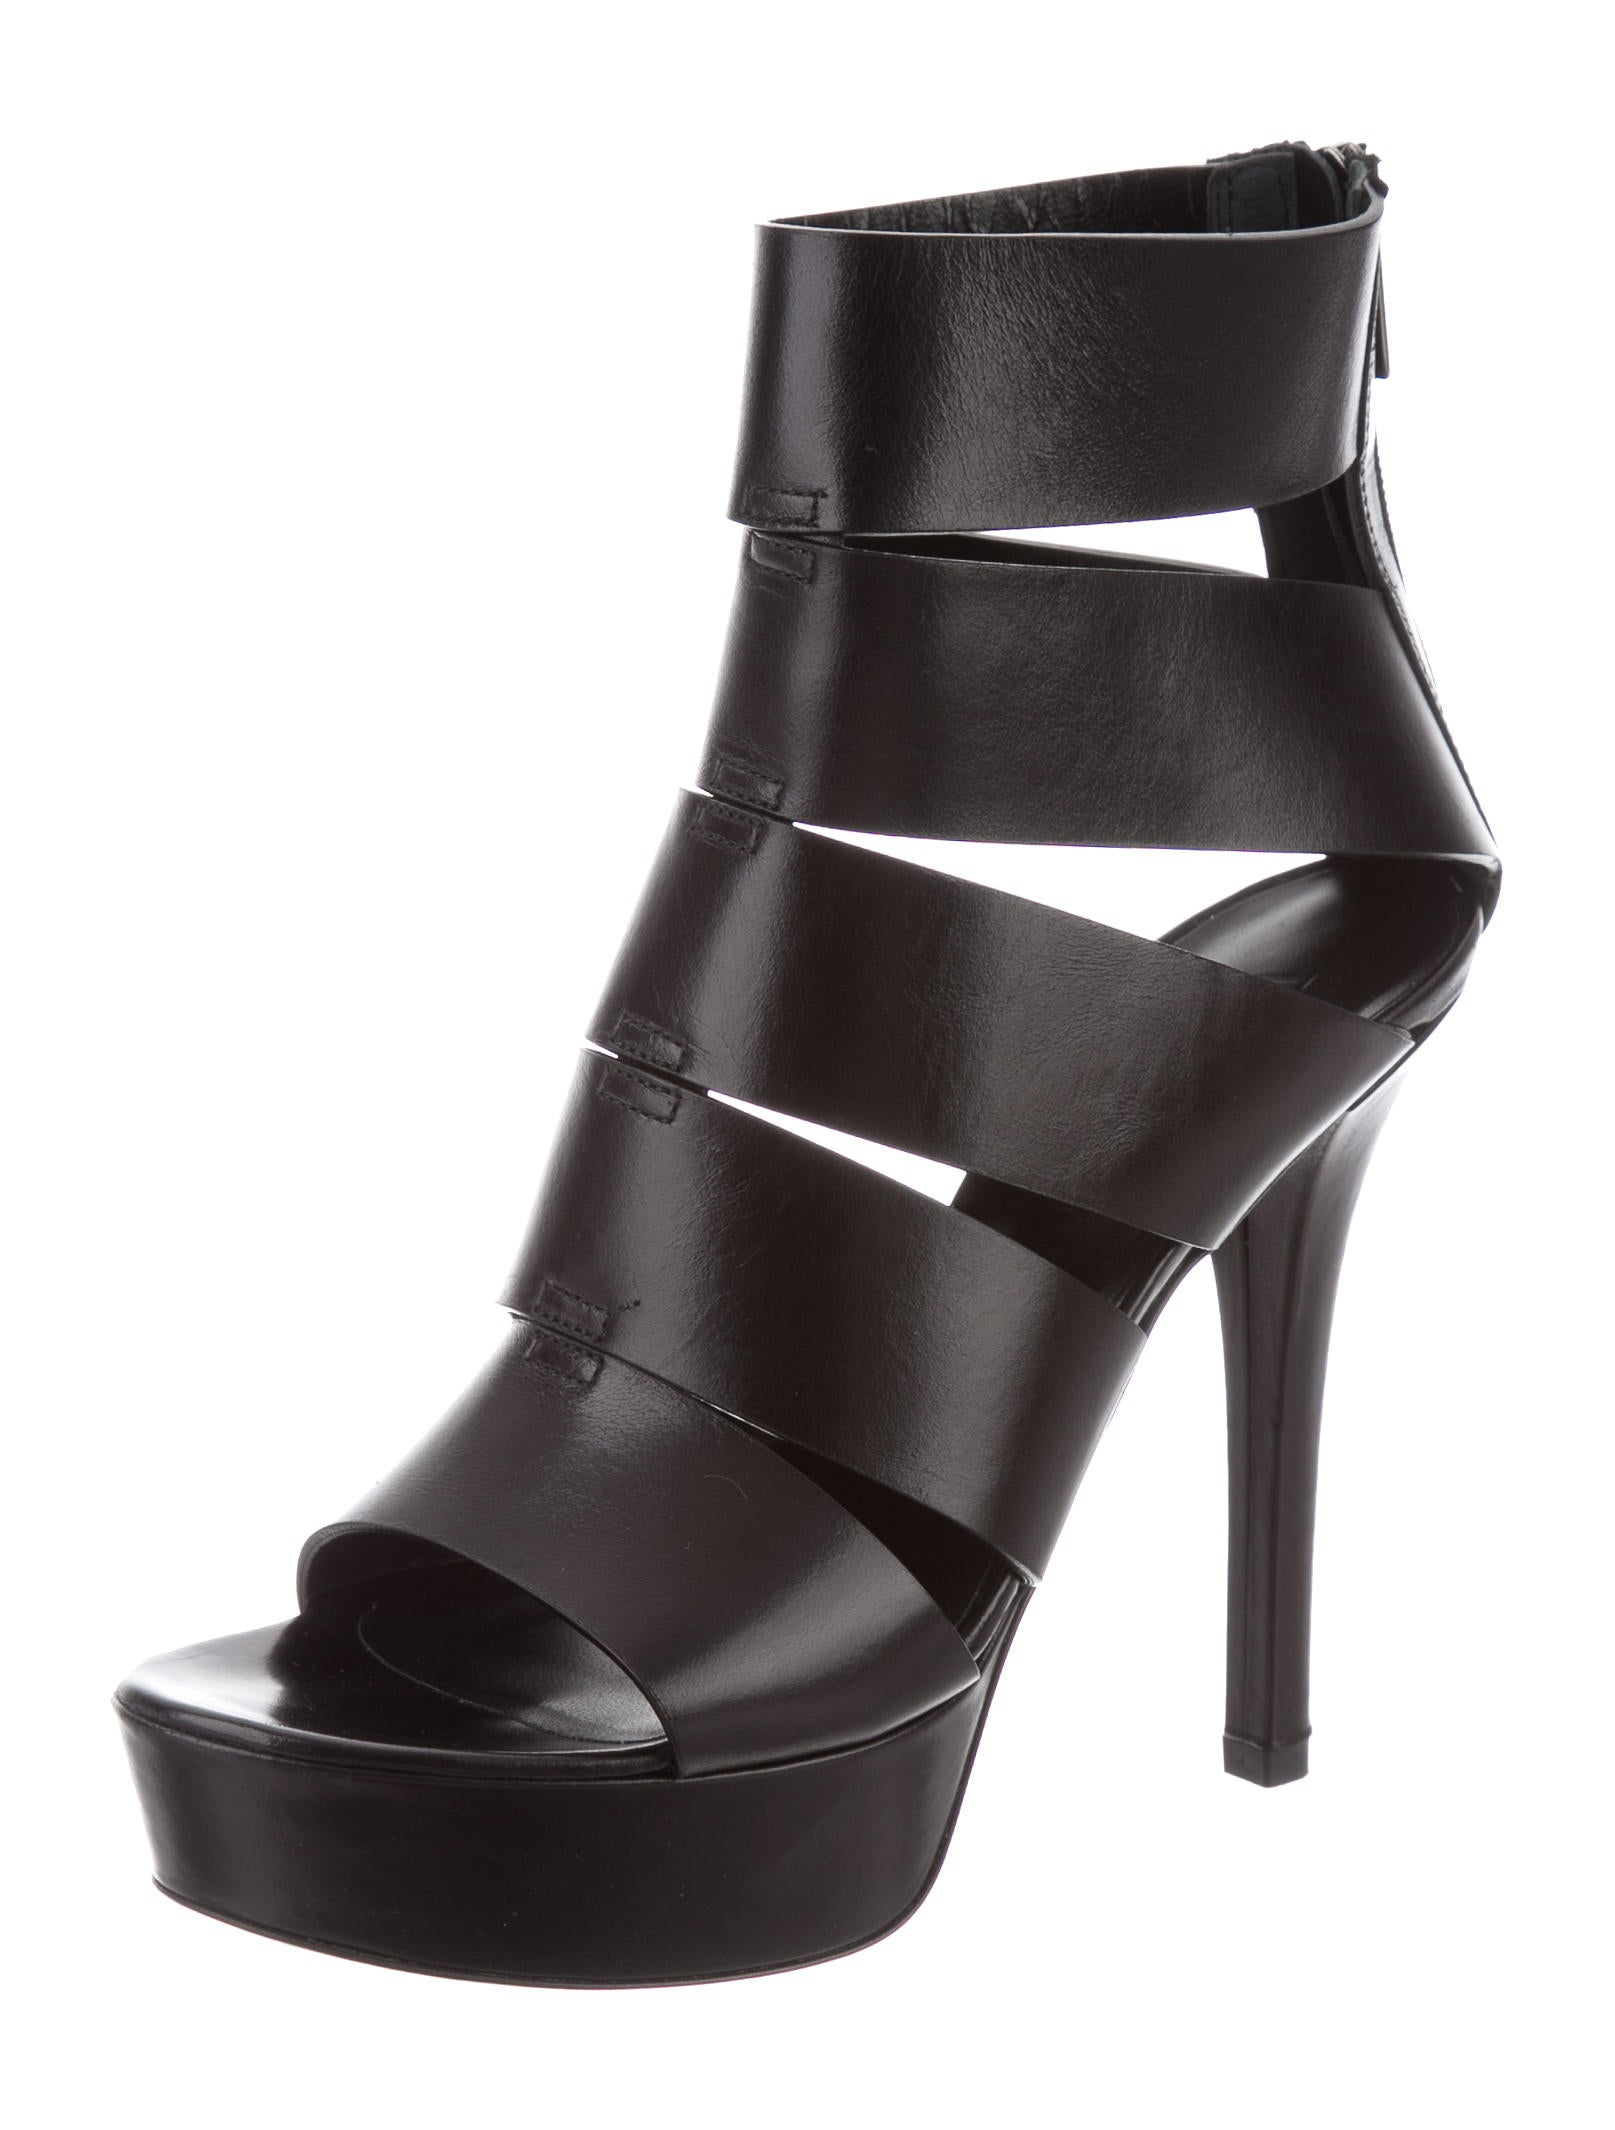 vera wang platform cage sandals shoes ver26467 the